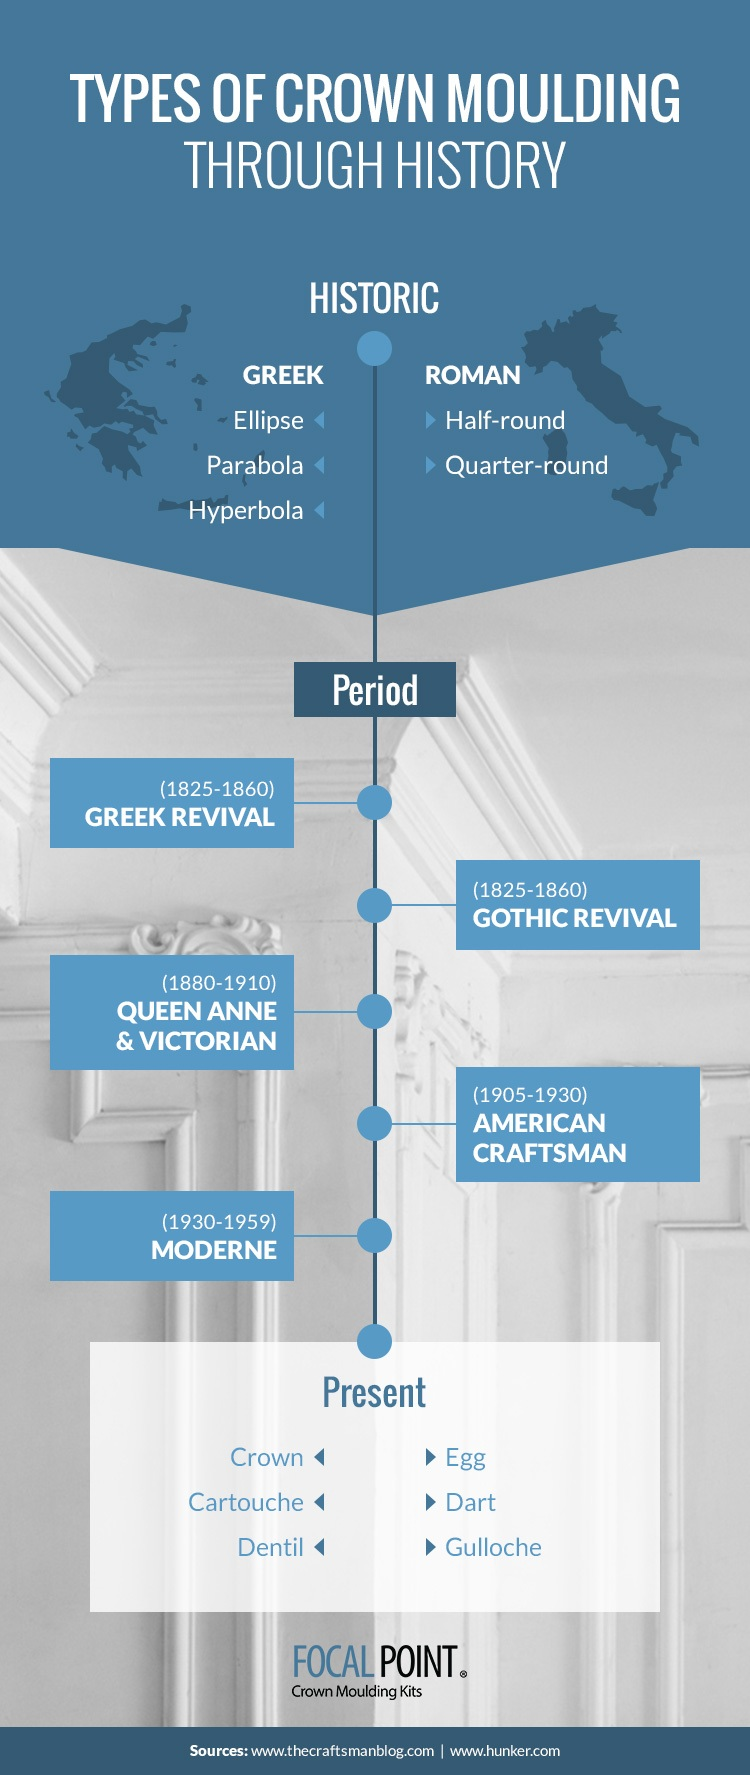 focal point mg history crown molding